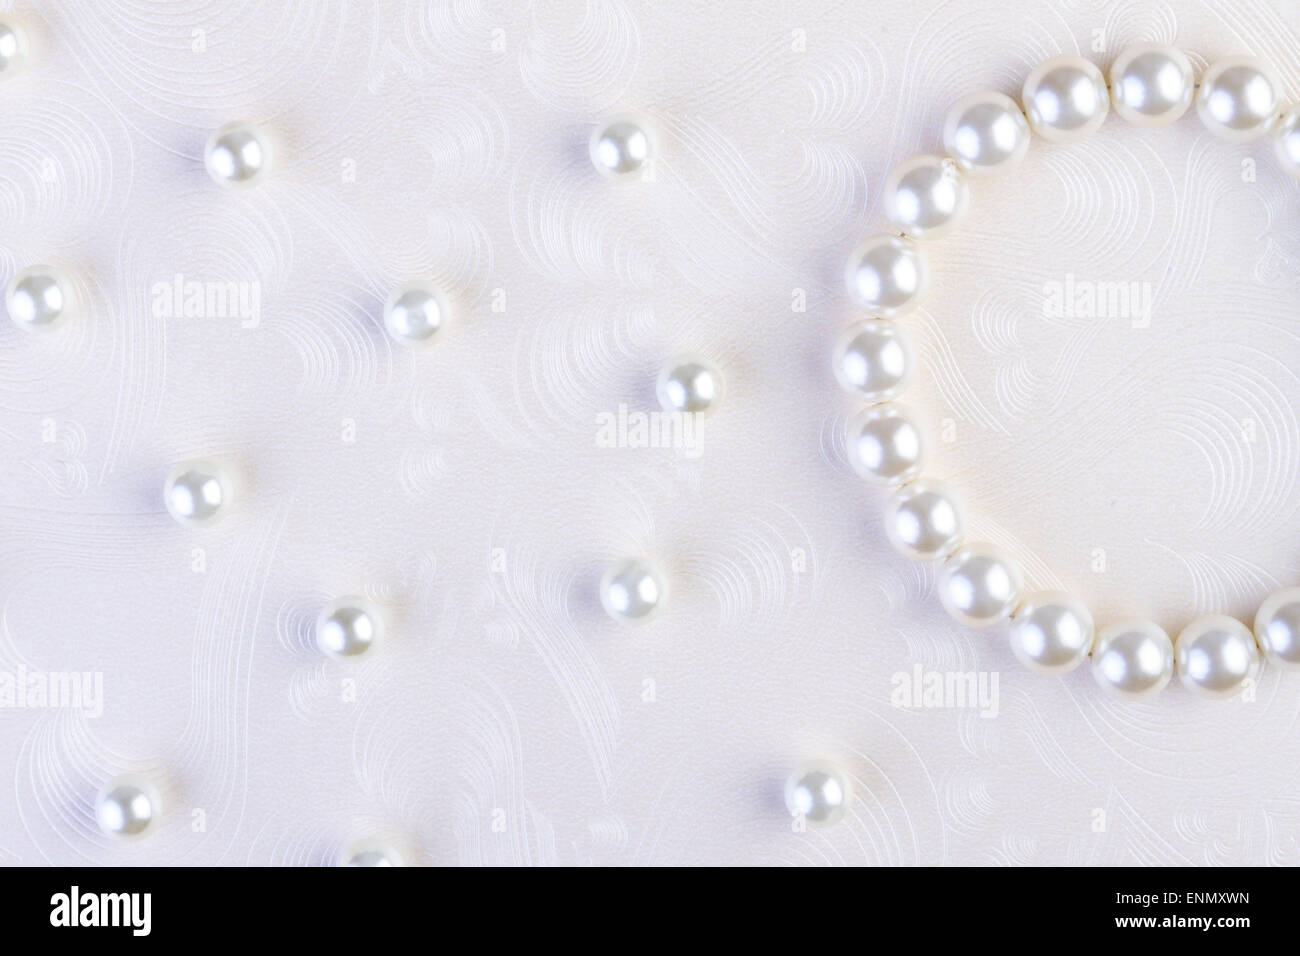 White pearls necklace on white paper background - Stock Image